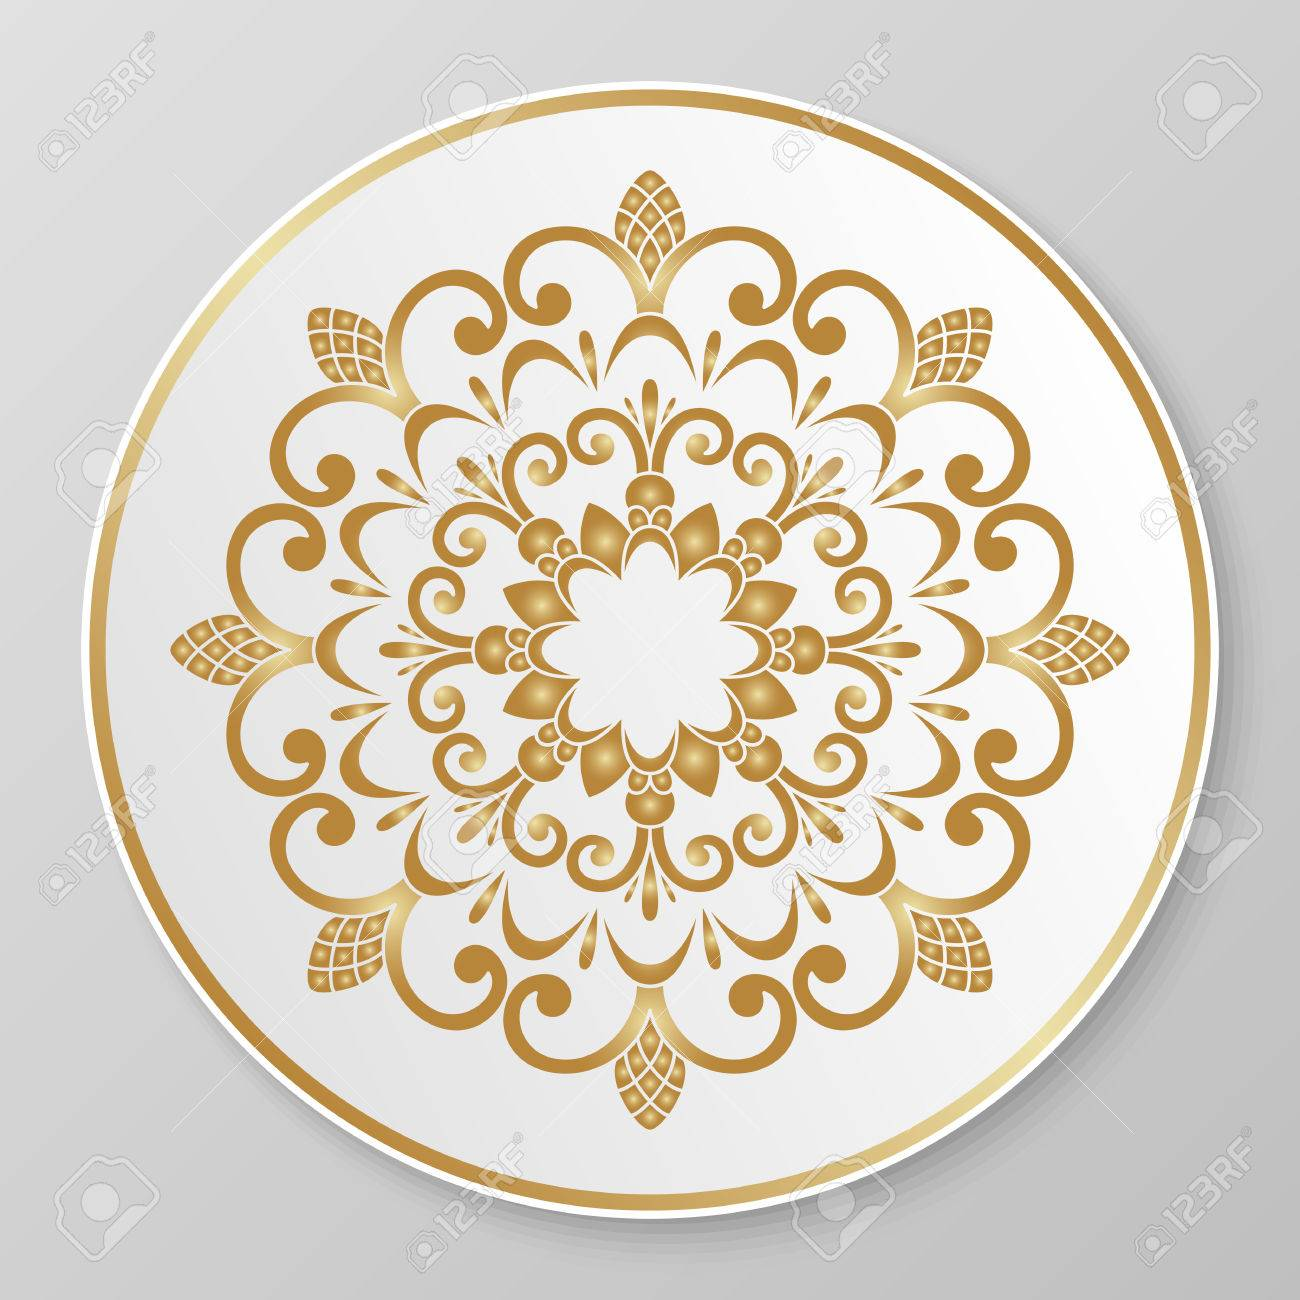 Vector - Vector gold floral ornament for decorative plate.  sc 1 st  123RF Stock Photo & Vector Gold Floral Ornament For Decorative Plate. Royalty Free ...